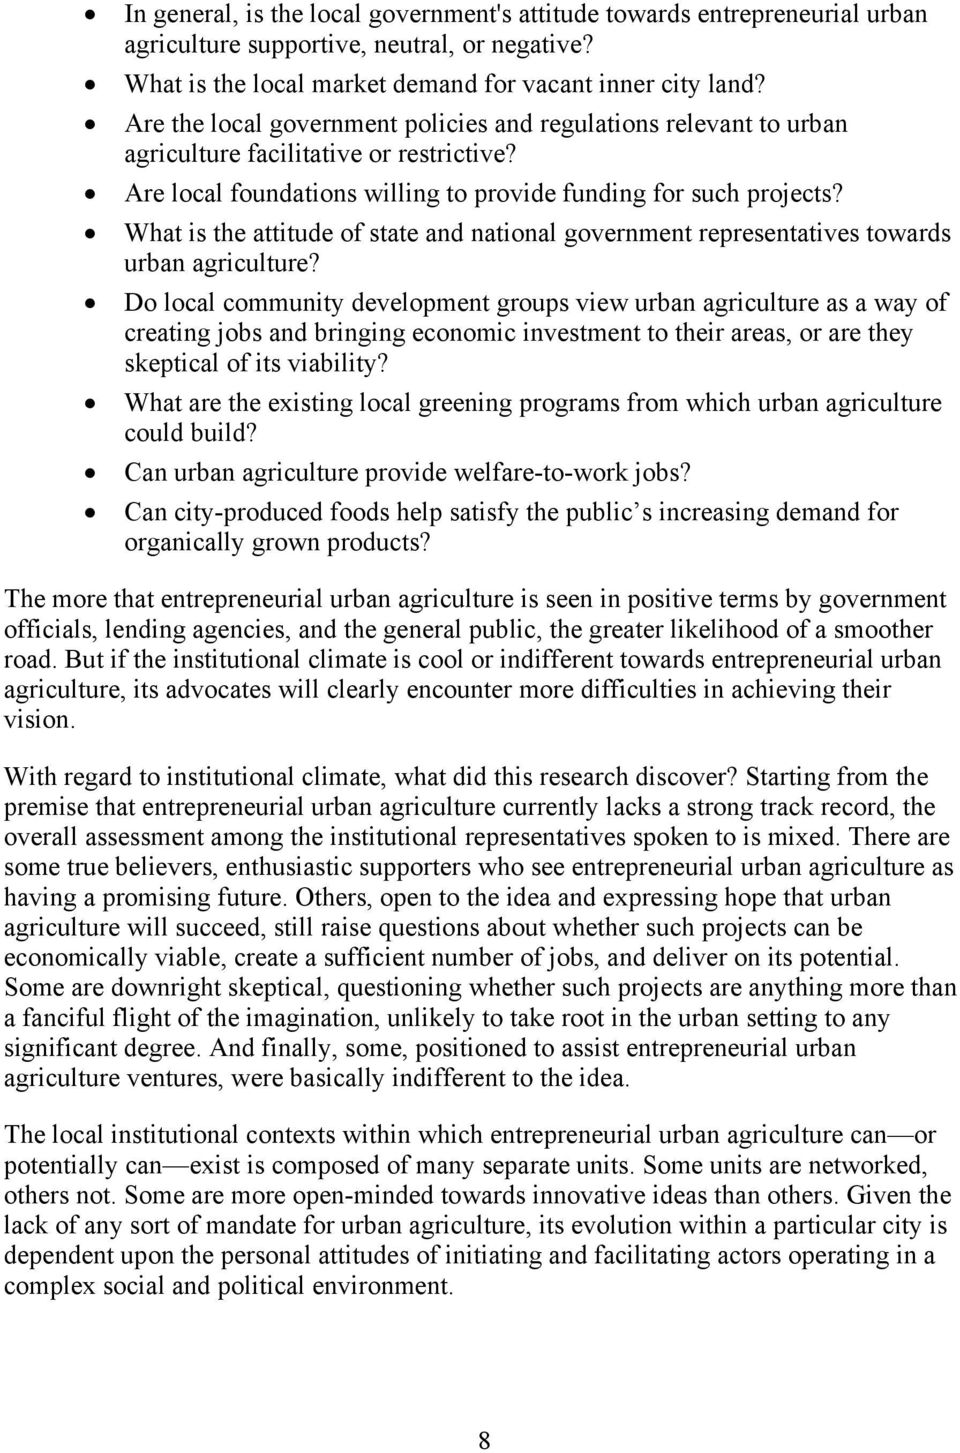 ! What is the attitude of state and national government representatives towards urban agriculture?